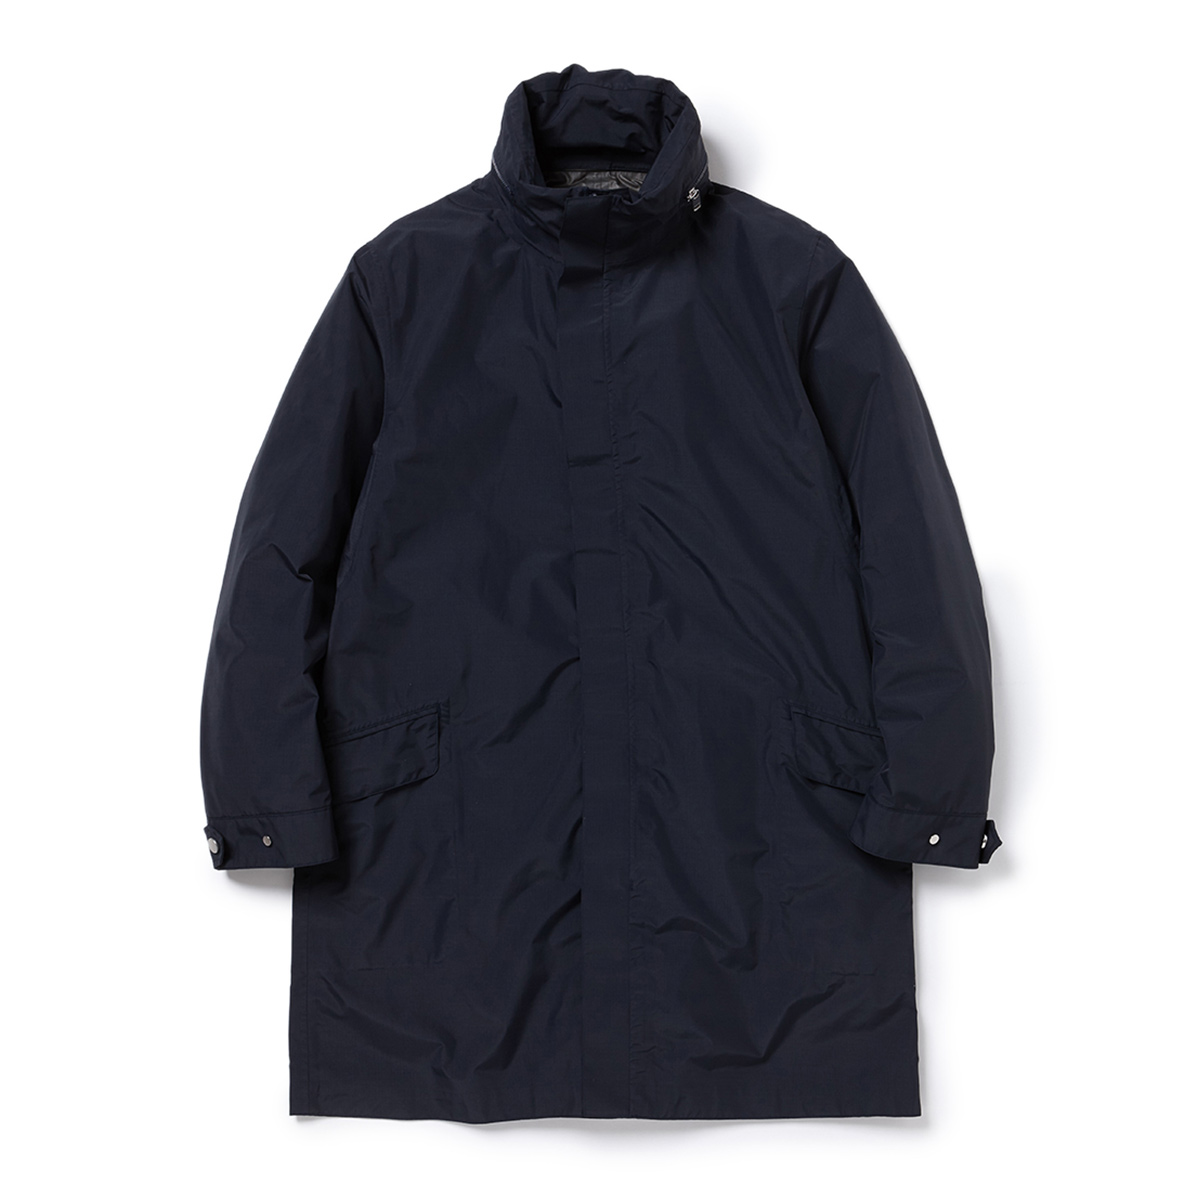 nonnative / SCIENTIST COAT NYLON RIPSTOP WITH GORE-TEX 2L -Navy